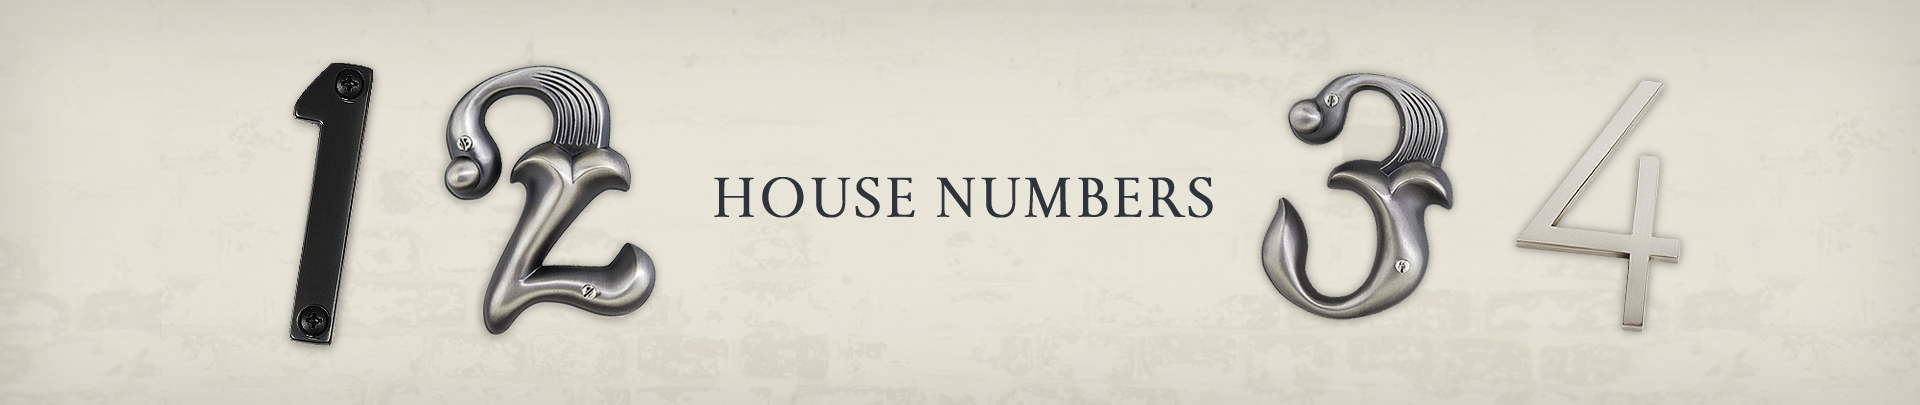 door-house-numbers.png